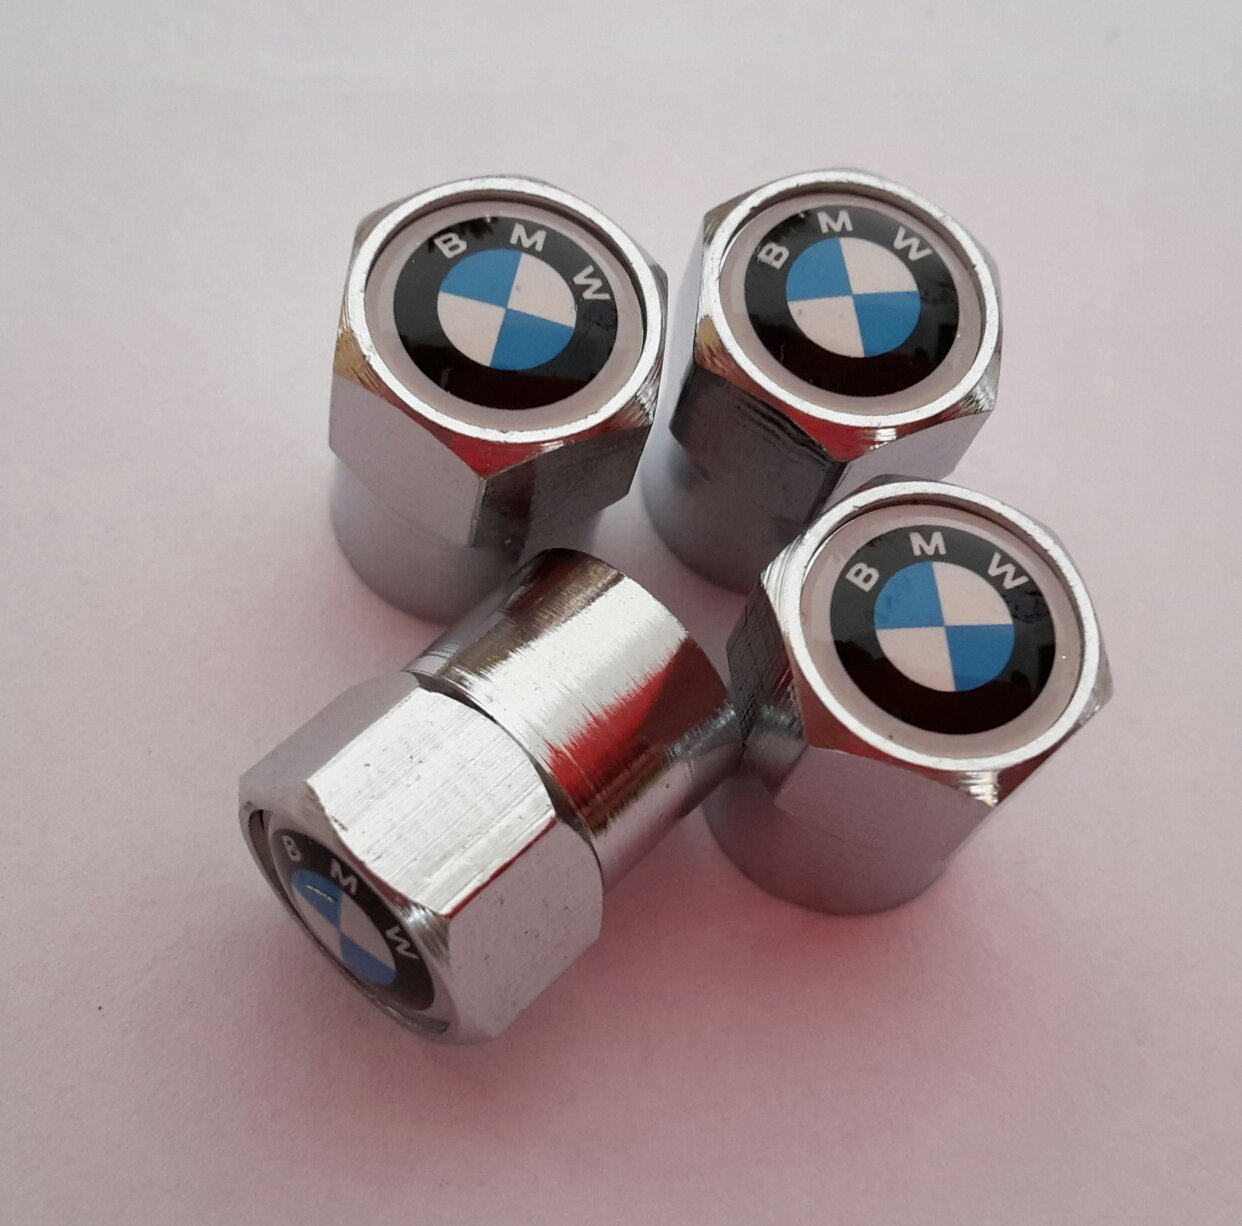 BMW (2) classic blue and white badge top set of four Silver Chrome metal car valve tyre dust cap M6 M3 X1 X3 X5 X6 Z4